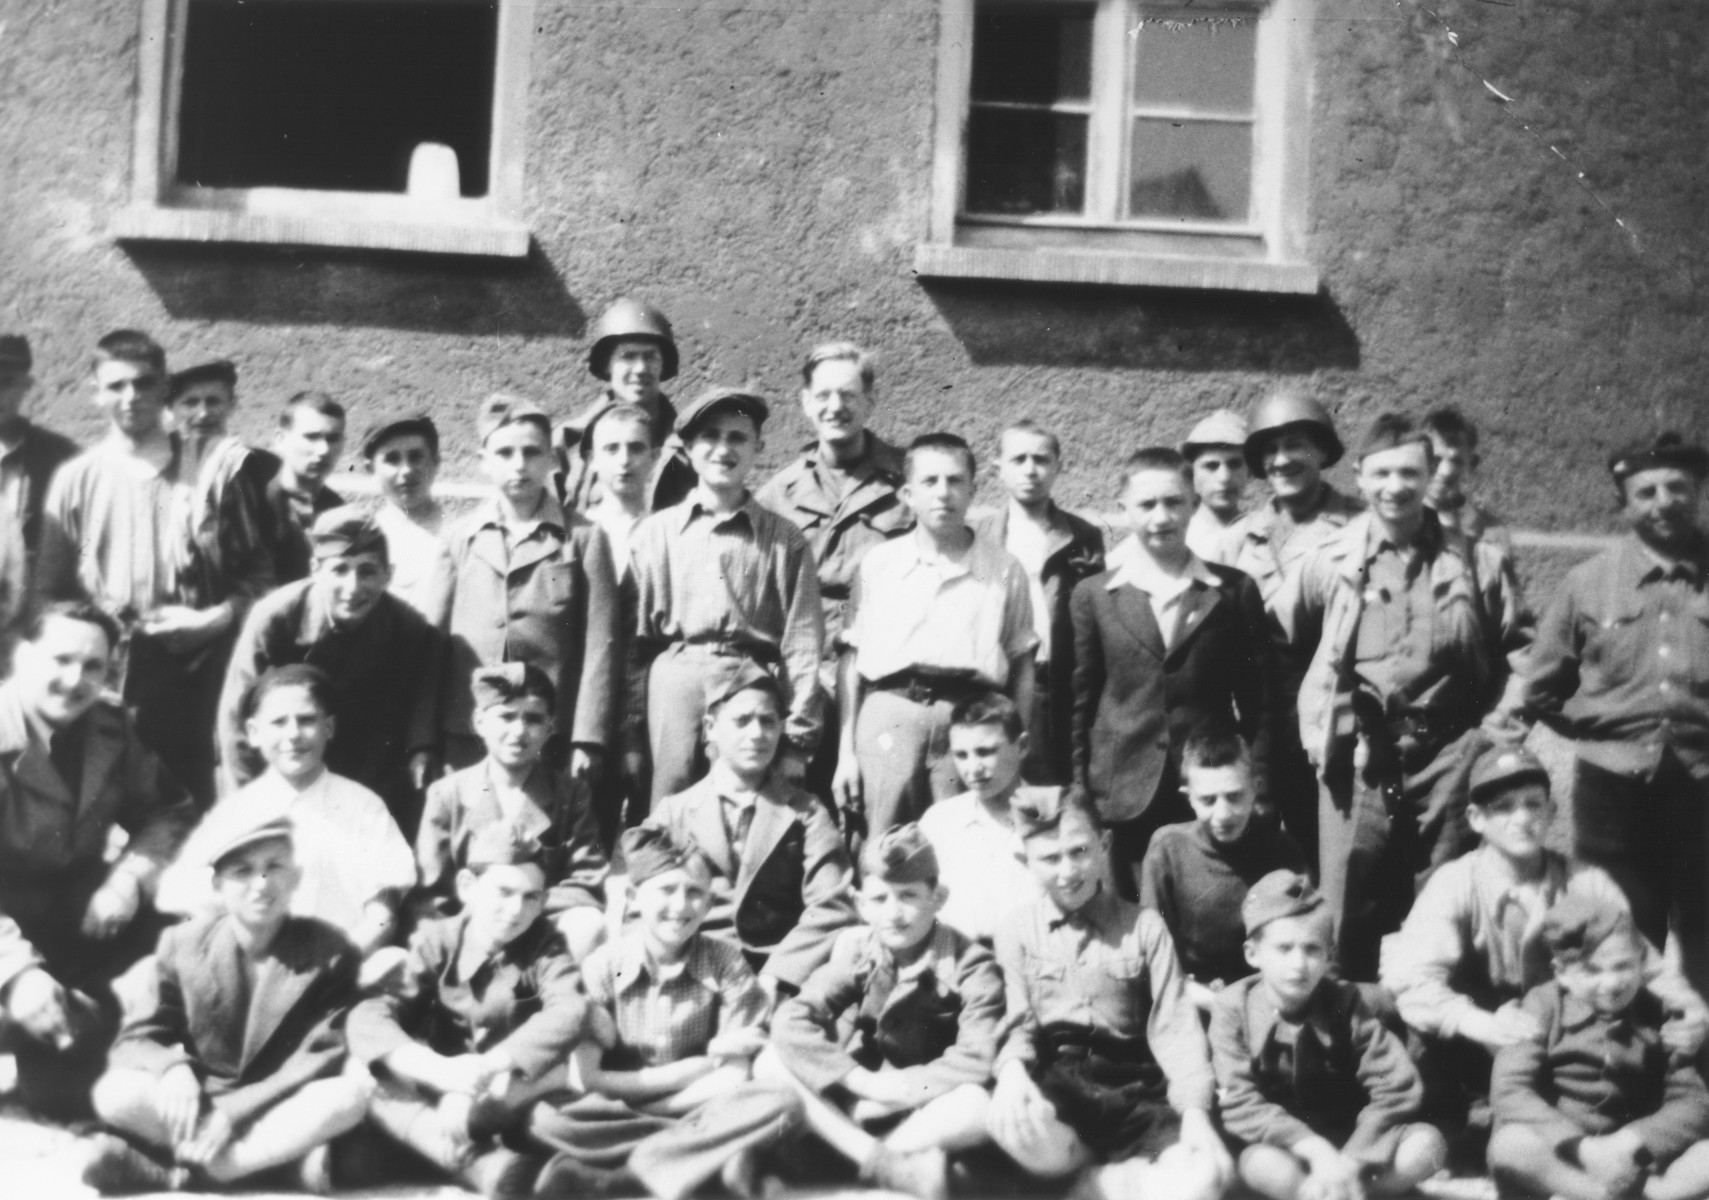 Group portrait of child survivors of Buchenwald taken outside a barracks prior to their departure for France and Switzerland.